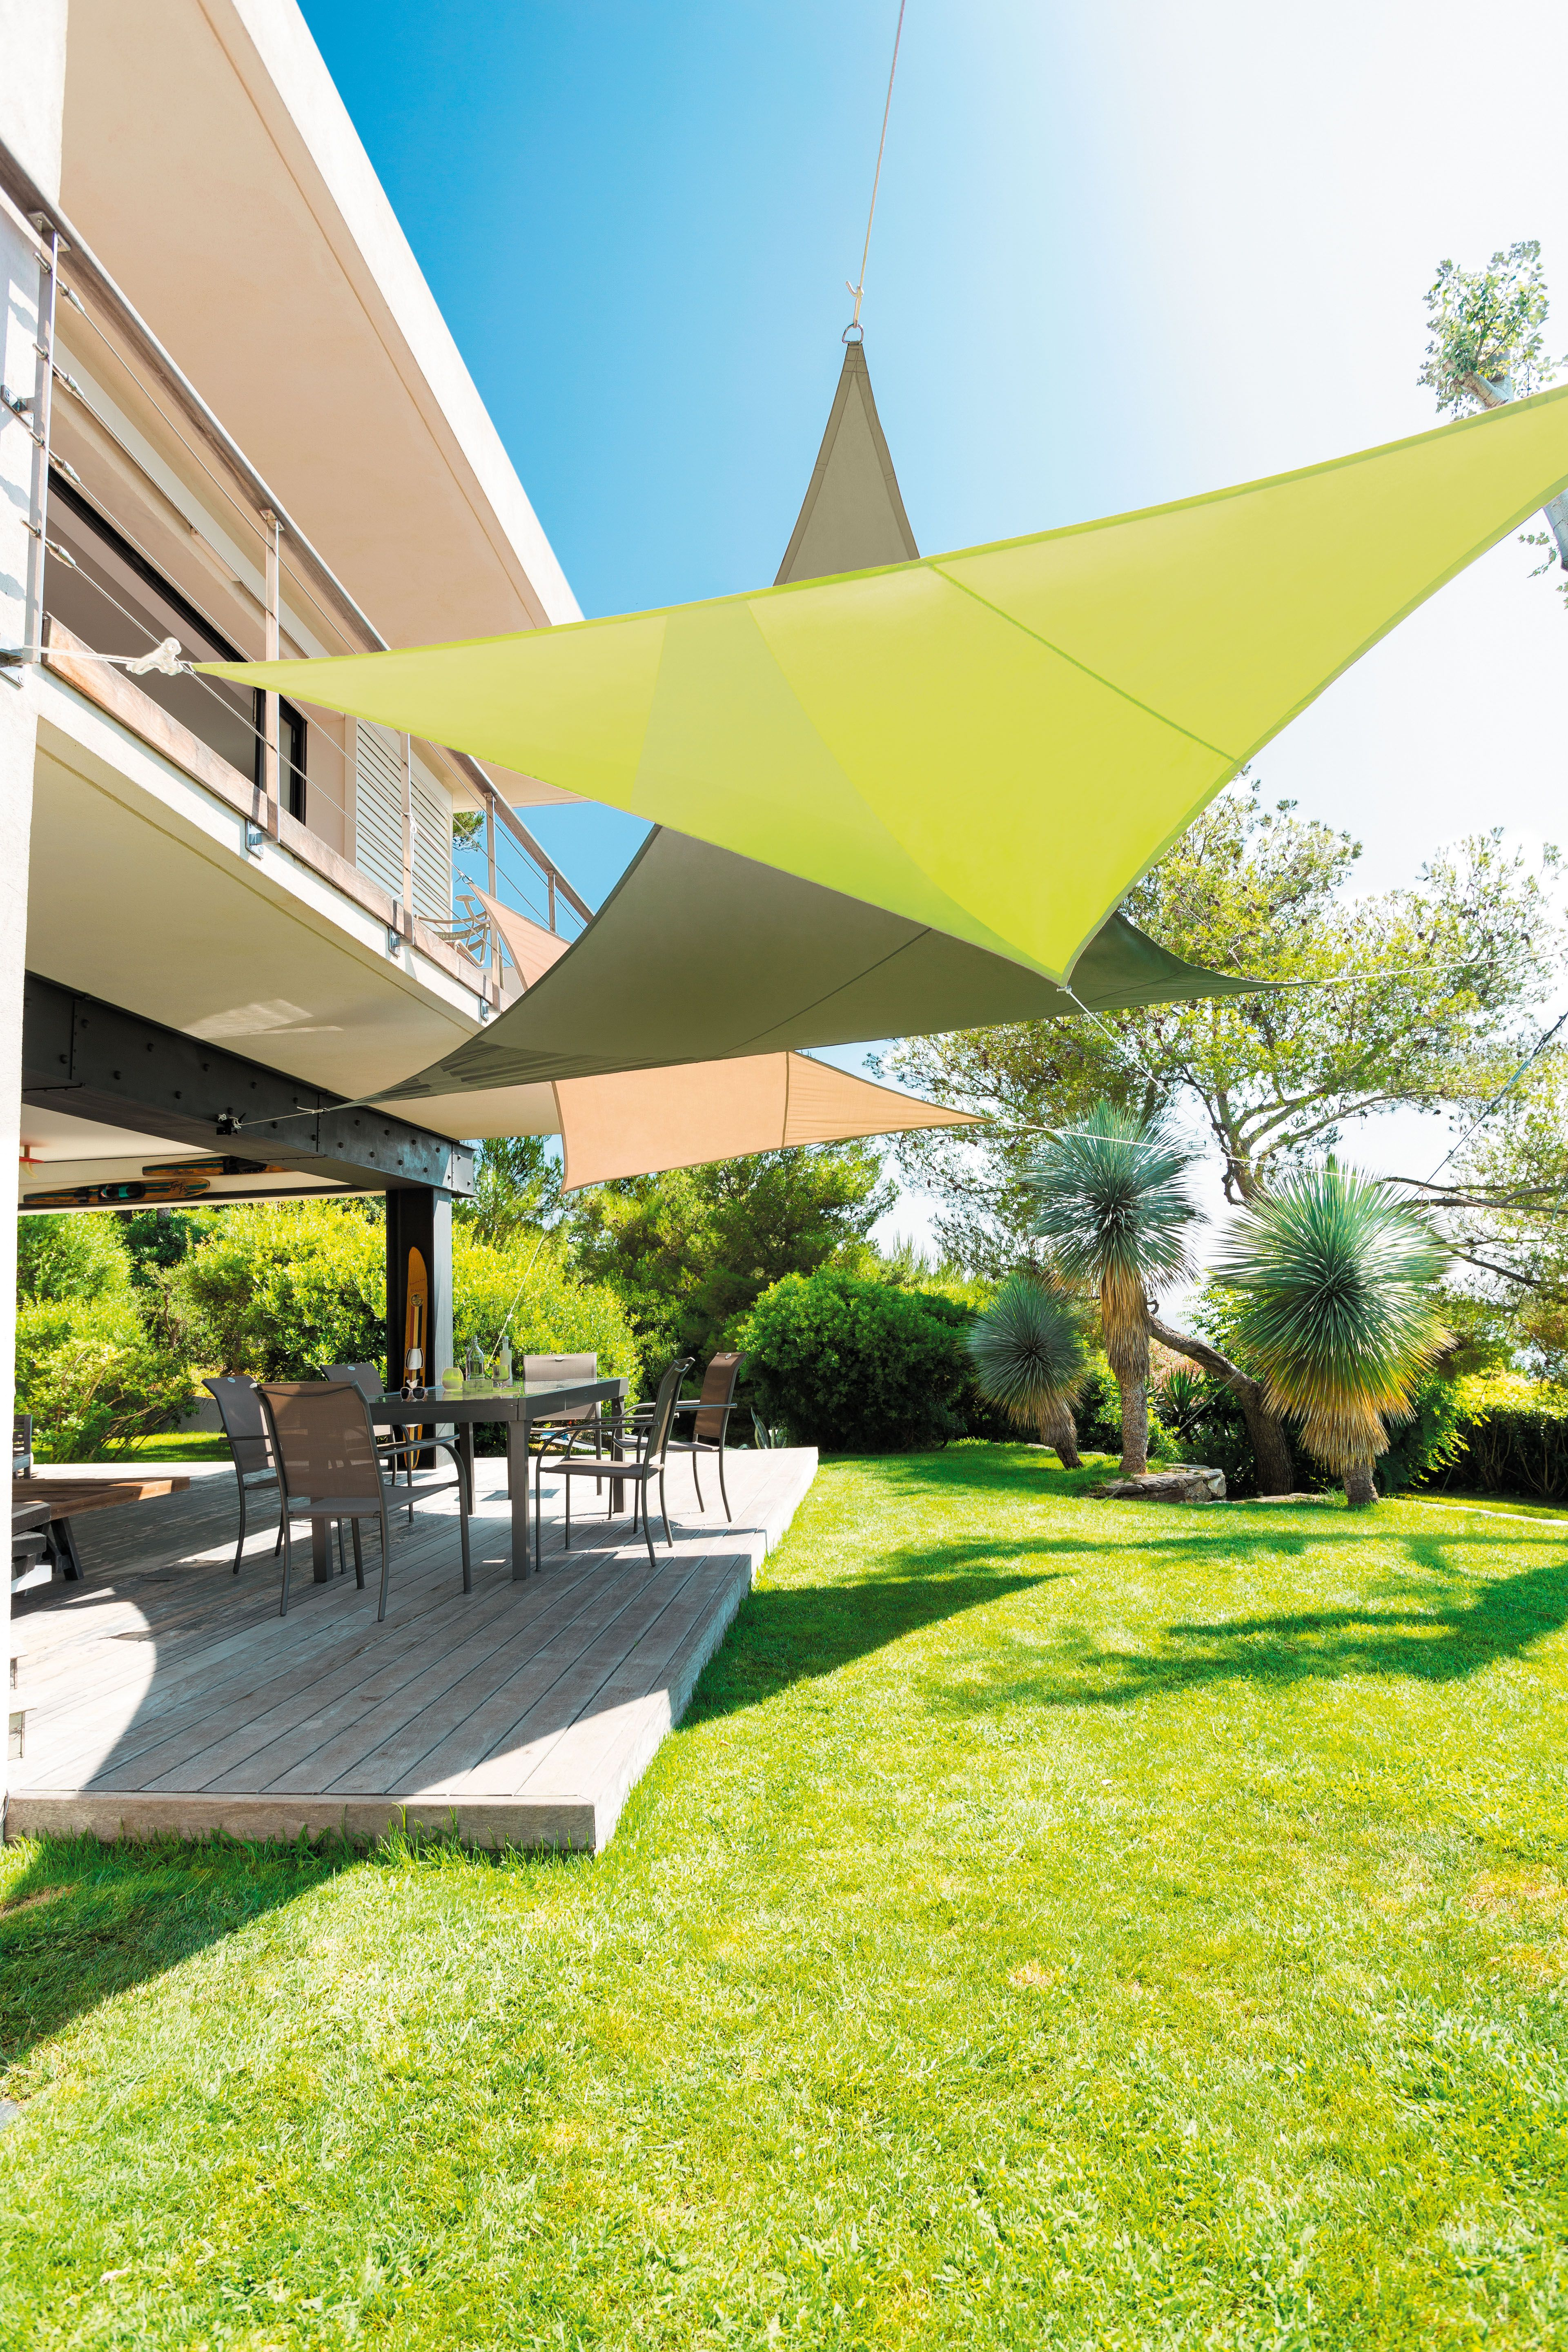 Bache Parasol Nos Toiles Solaires Design Backyard Ideas For Mine In 2019